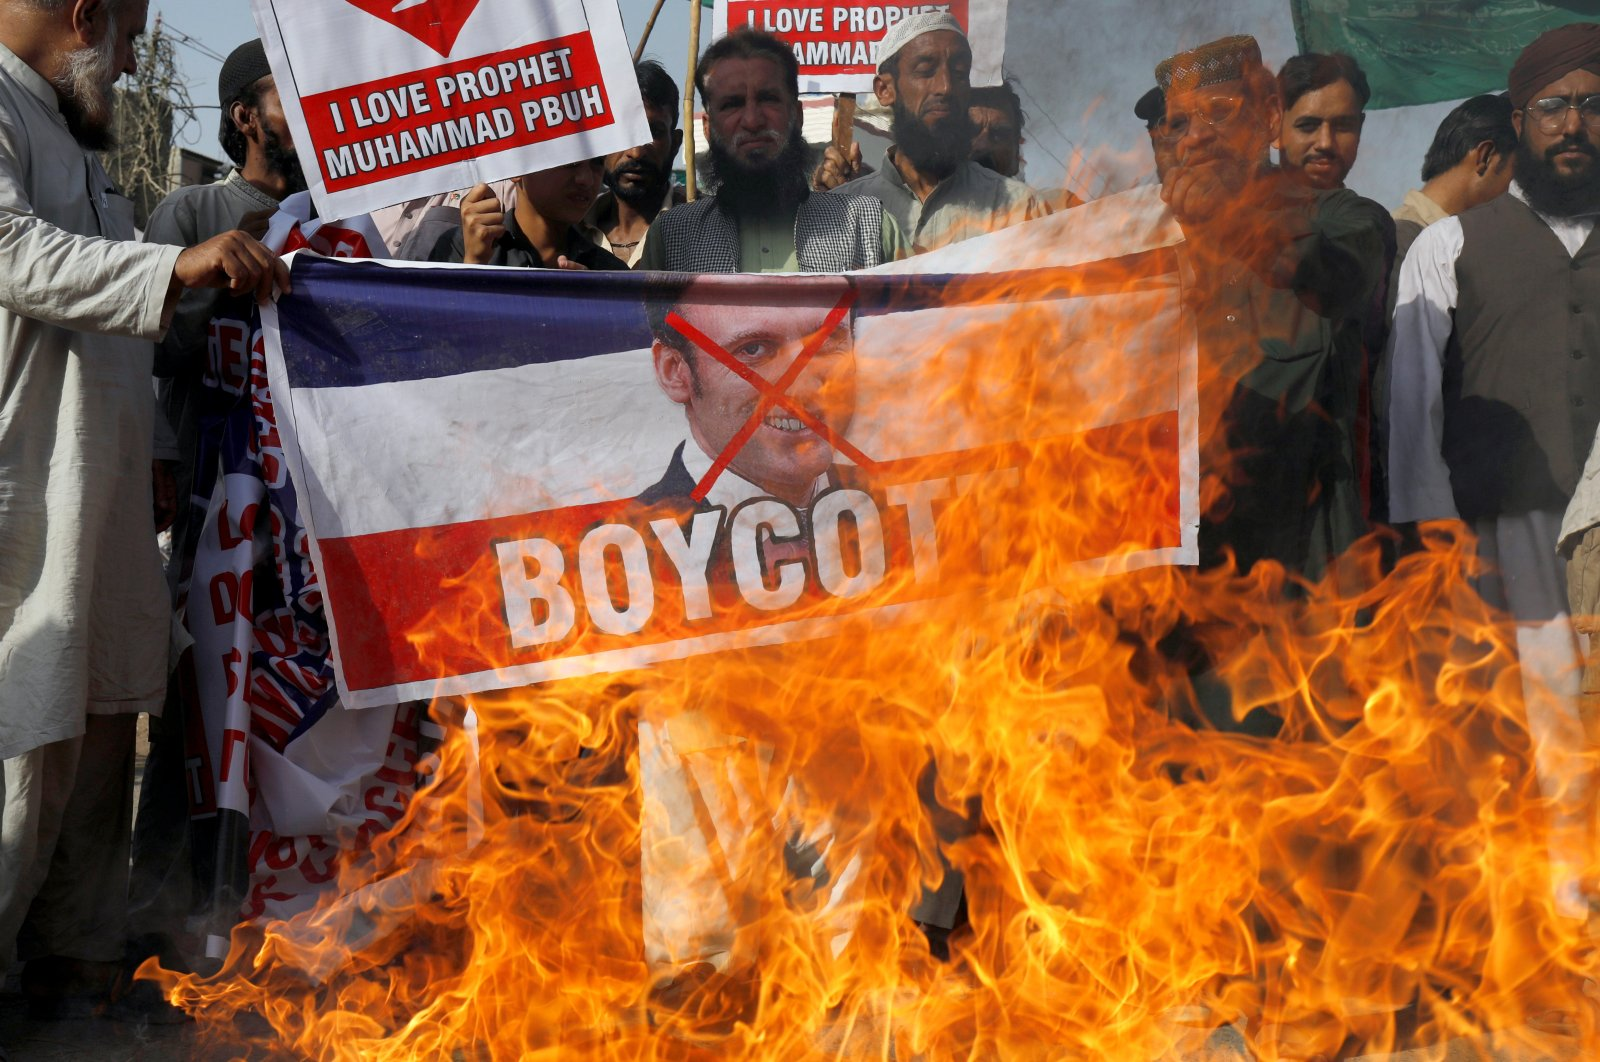 People chant slogans as they set fire to a banner with a crossed-out image of French President Emmanuel Macron during a protest against cartoon publications of the Prophet Mohammad in France and Macron's comments, in Karachi, Pakistan, Oct. 27, 2020. (REUTERS Photo)